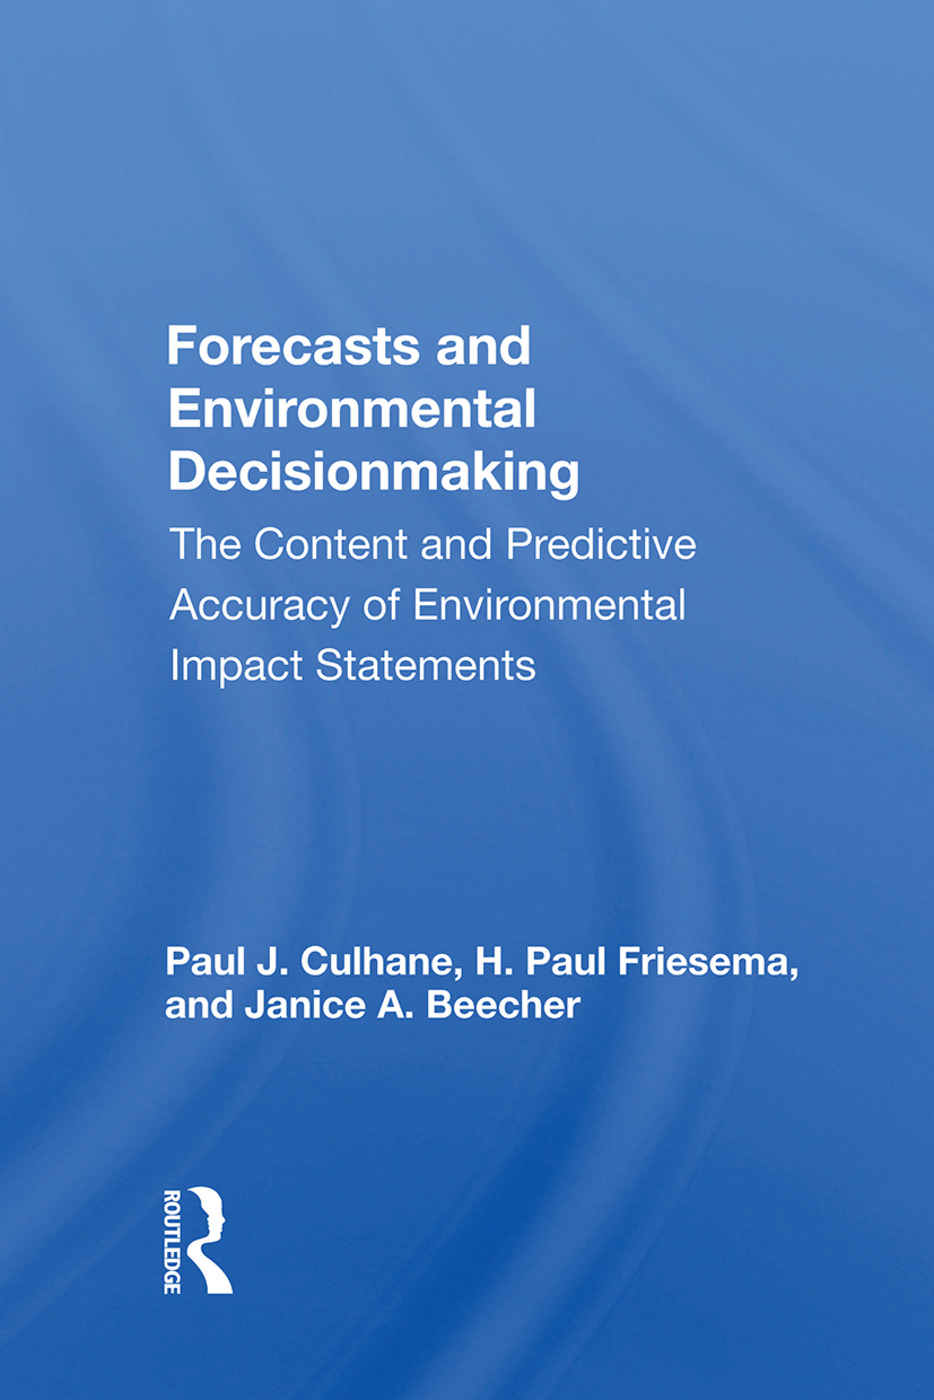 Forecasts And Environmental Decision Making: The Content And Predictive Accuracy Of Environmental Impact Statements book cover